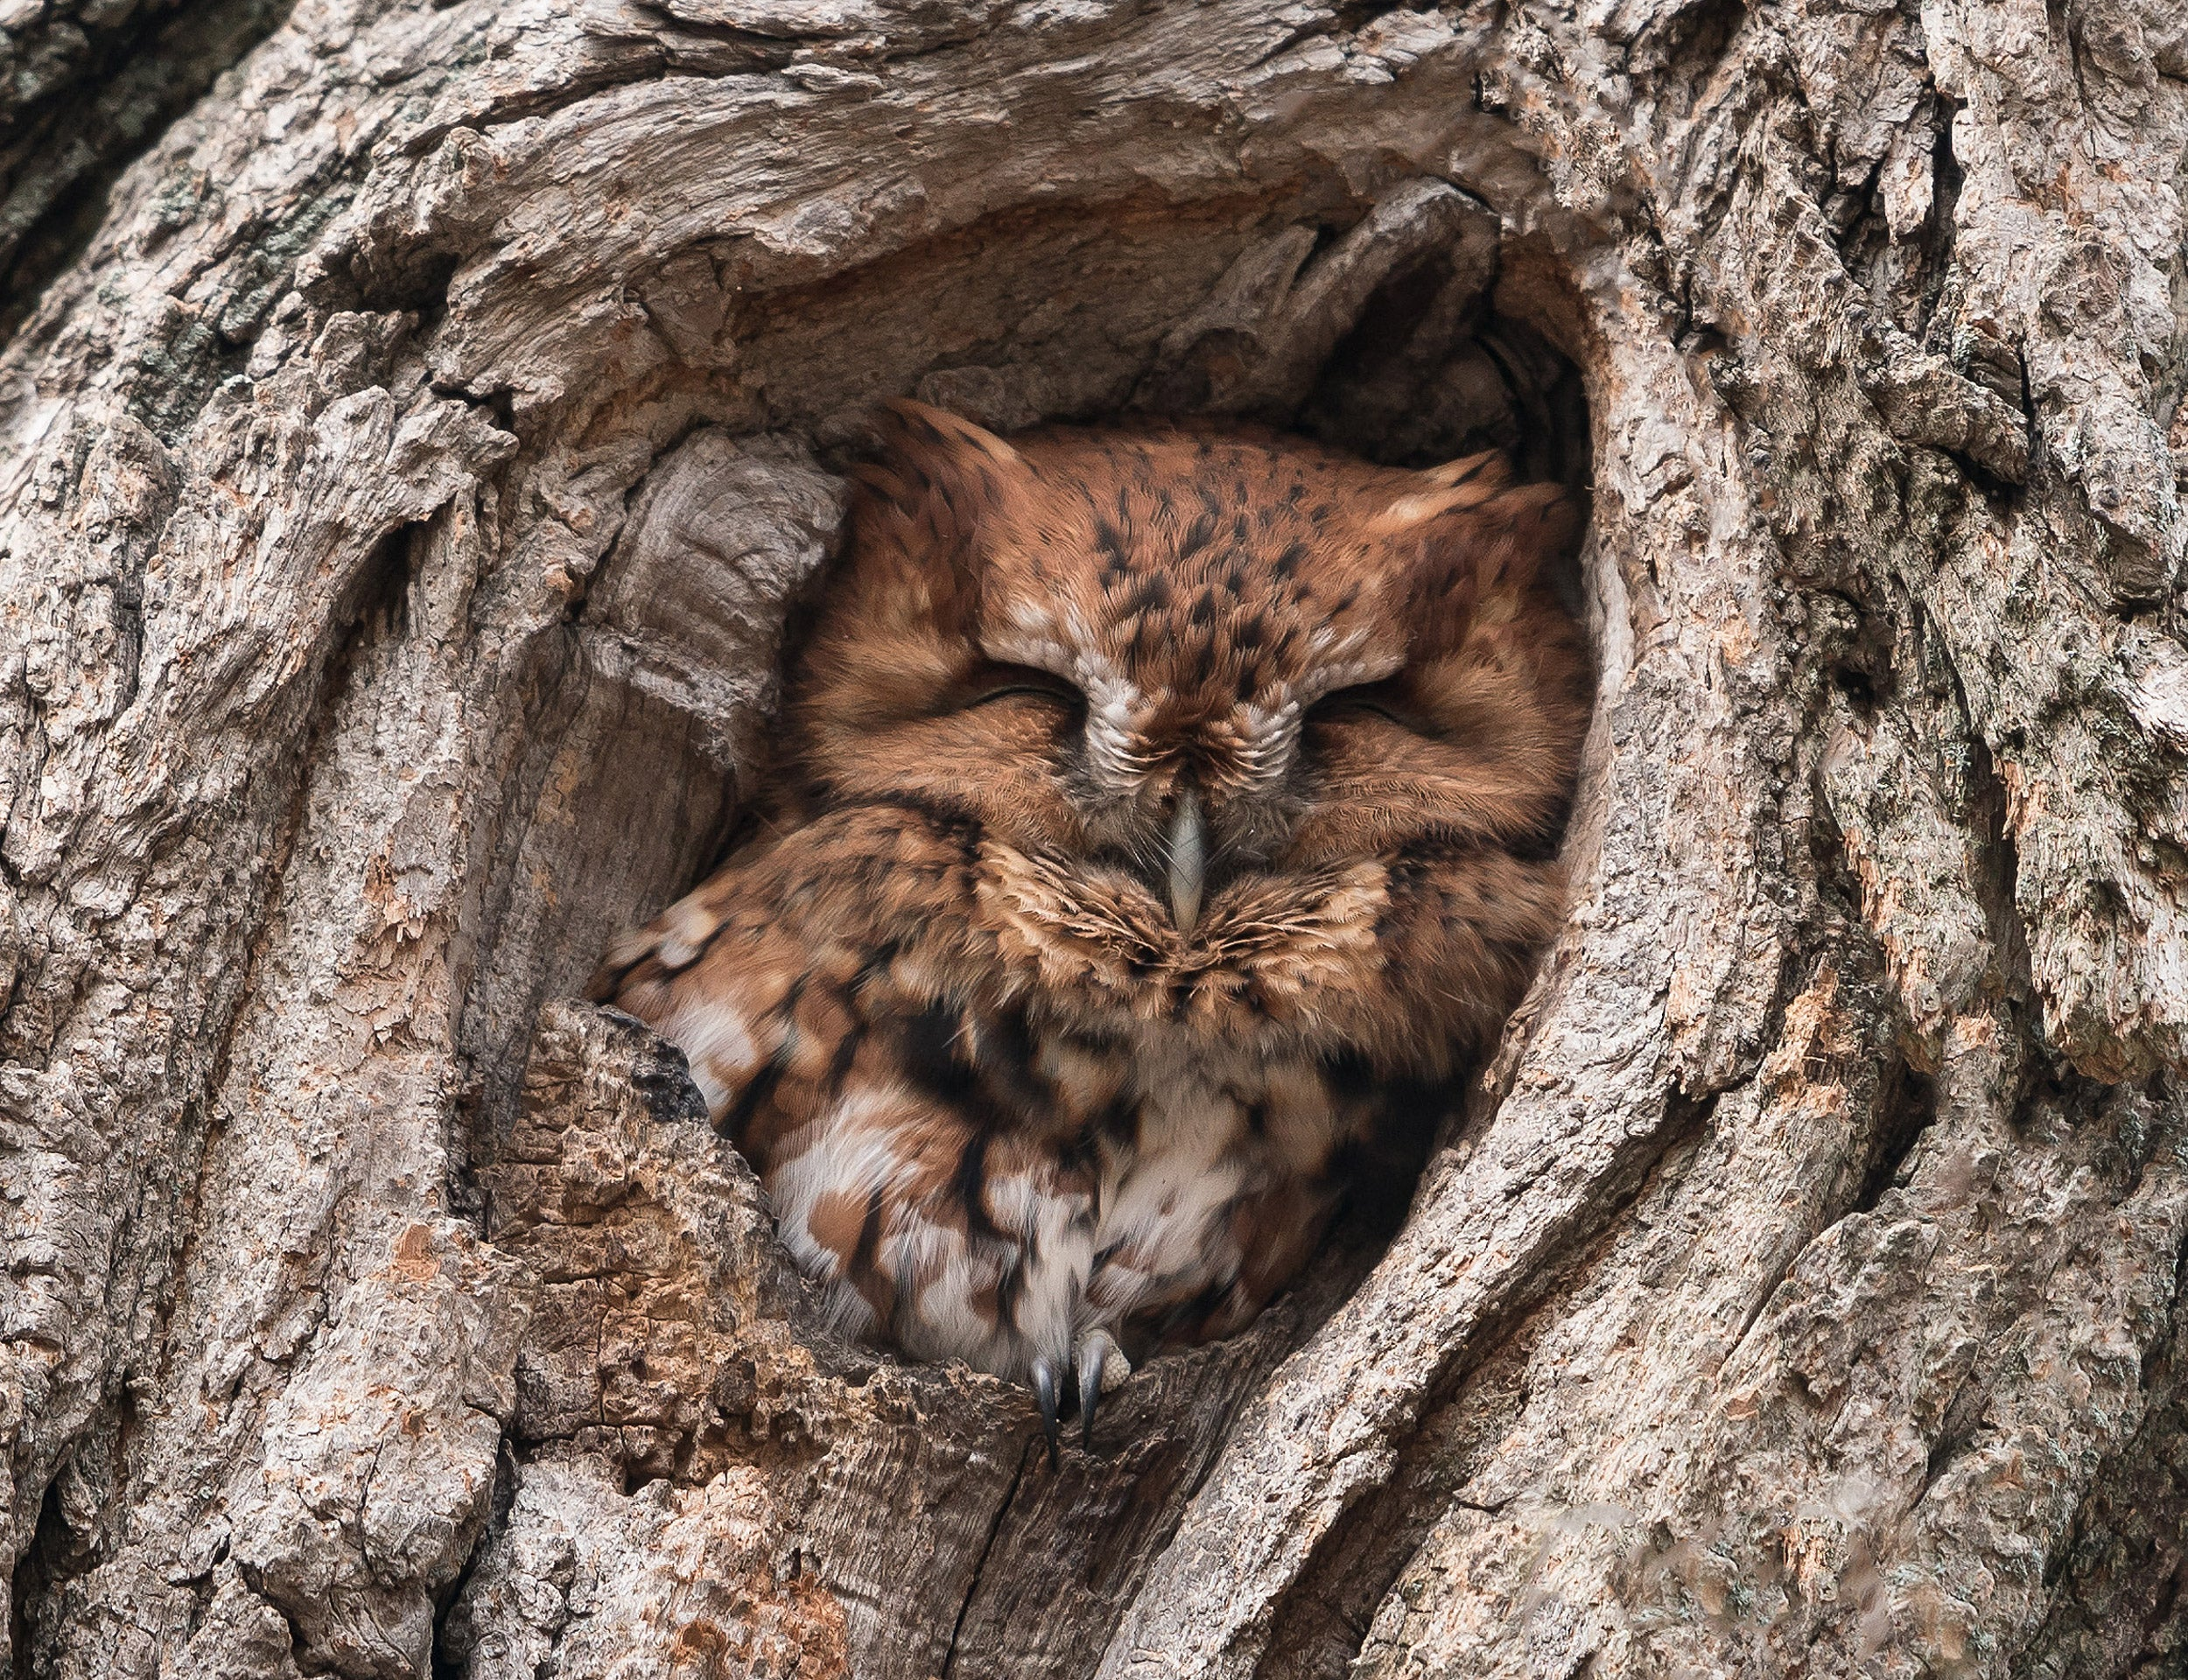 Screech owl nestled in tree.